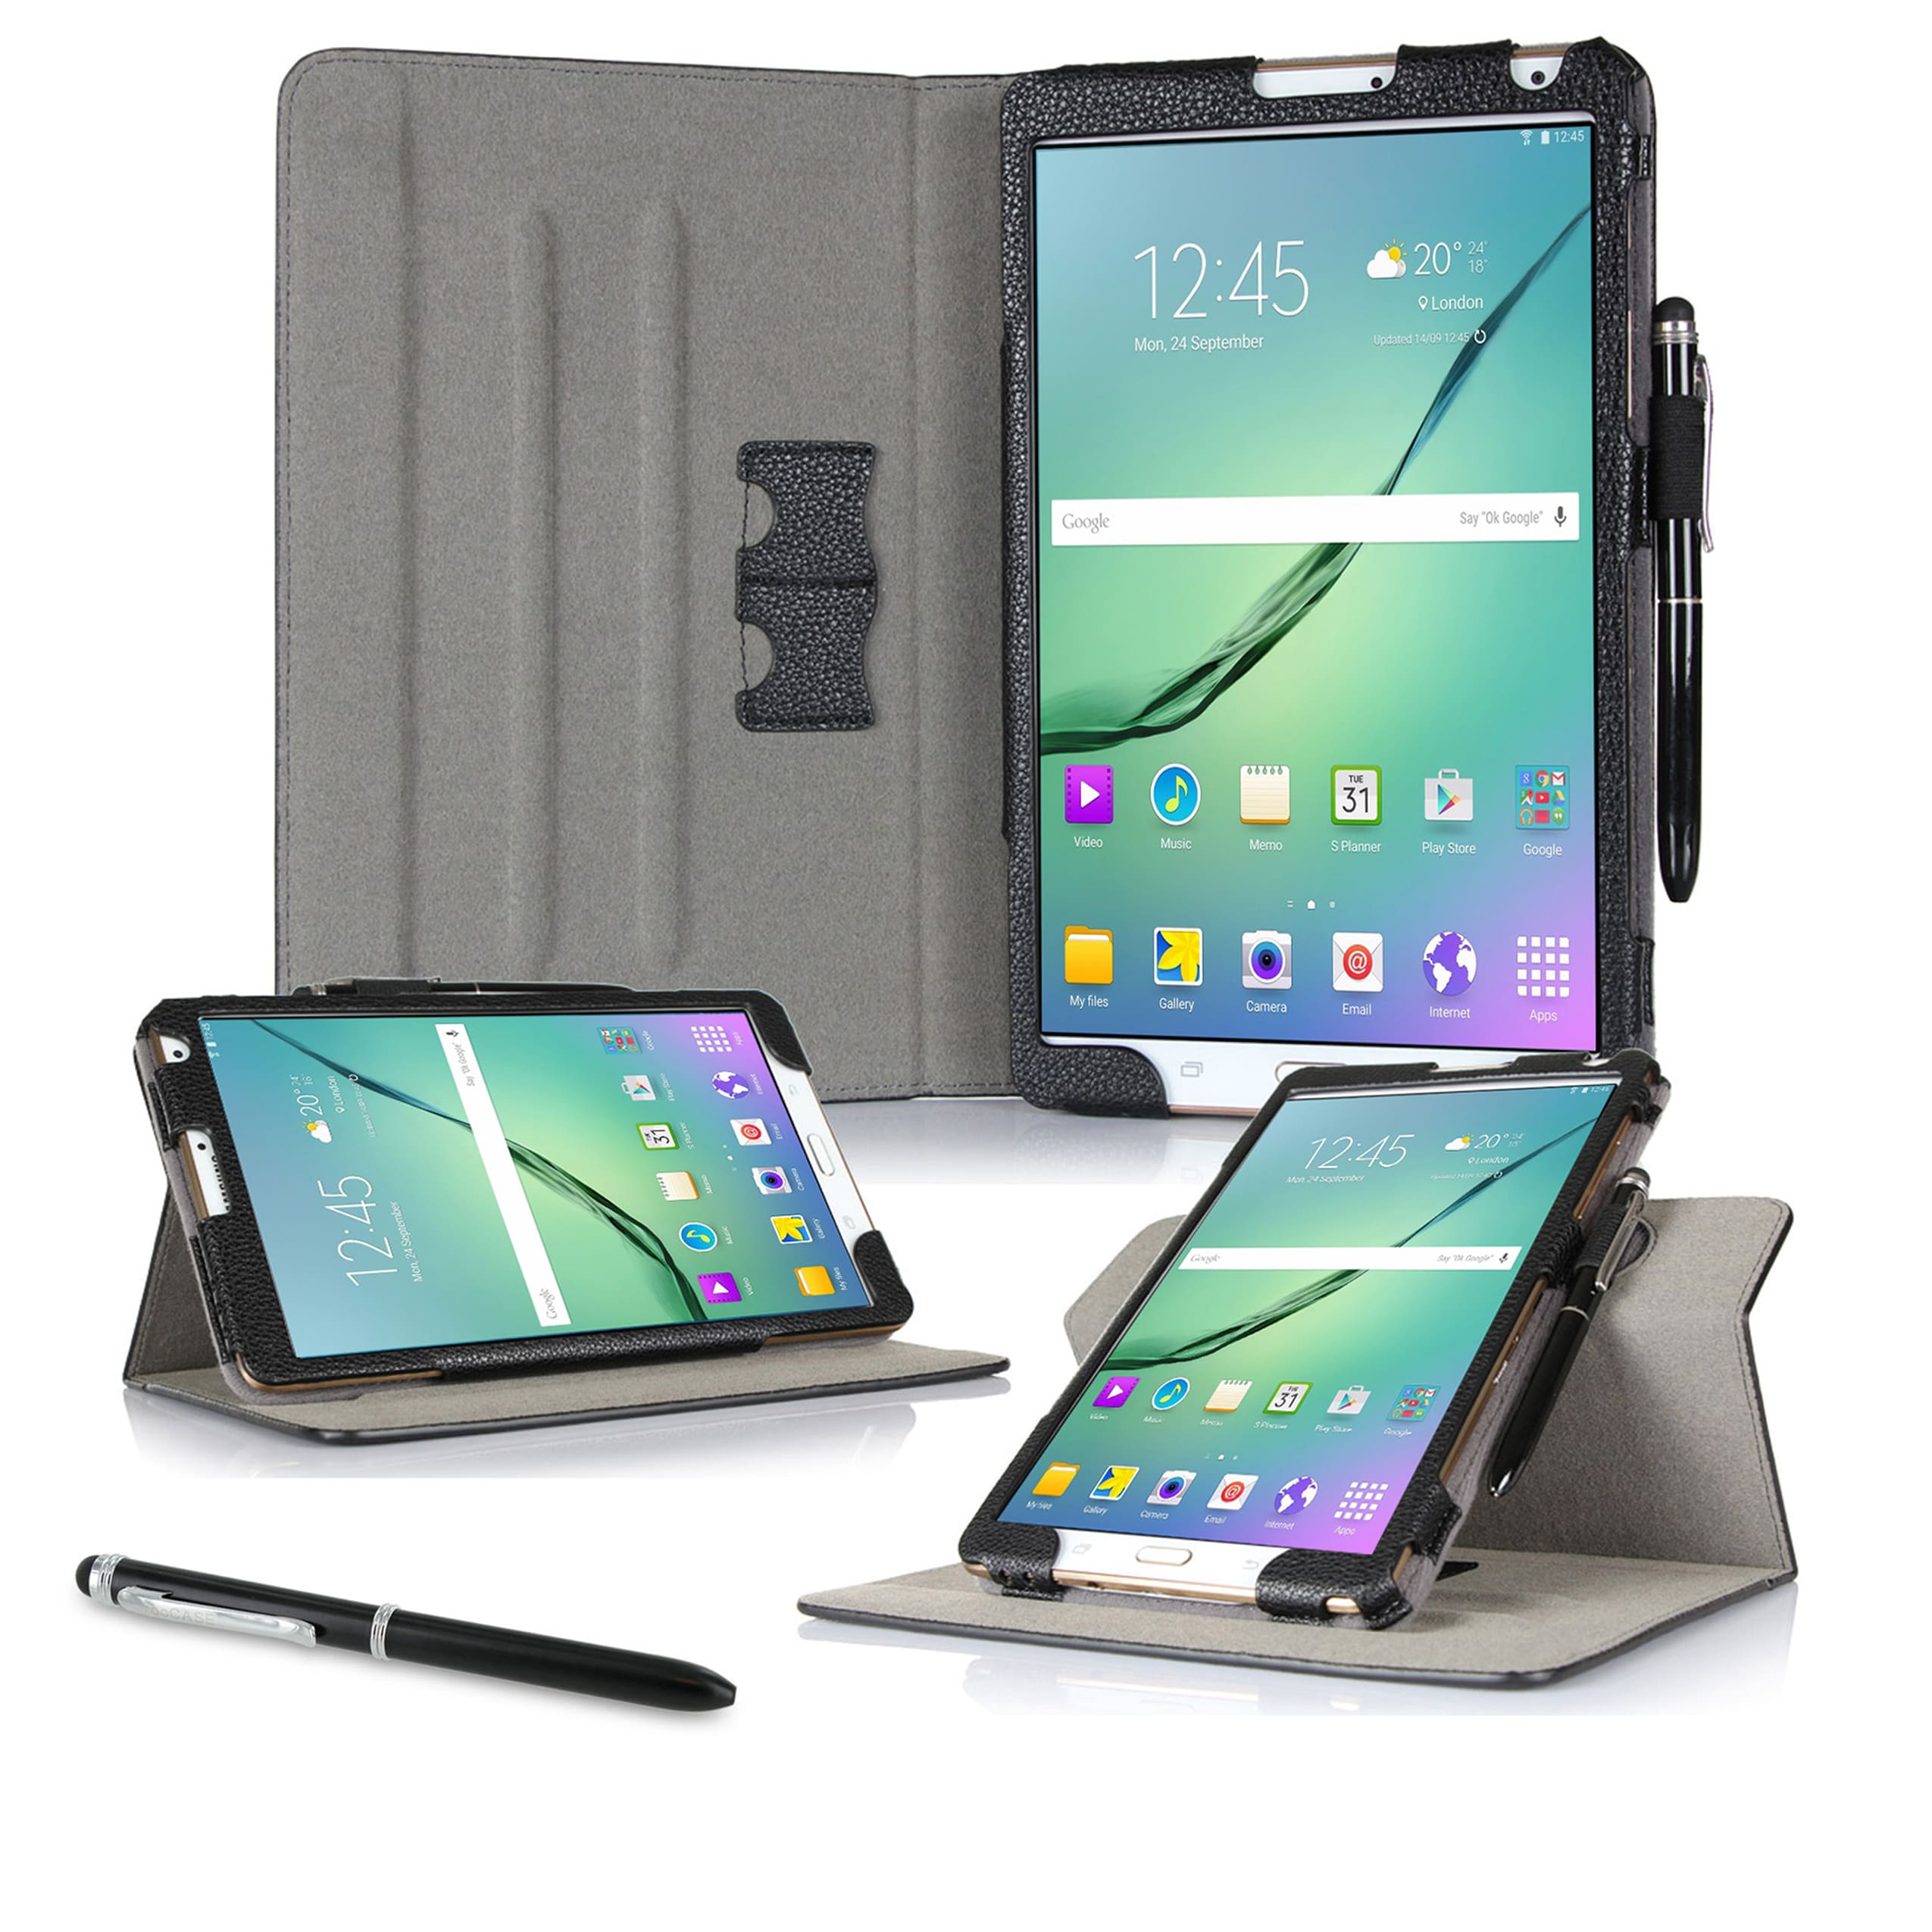 roocase Dual View Case for Samsung Galaxy Tab S2 9.7